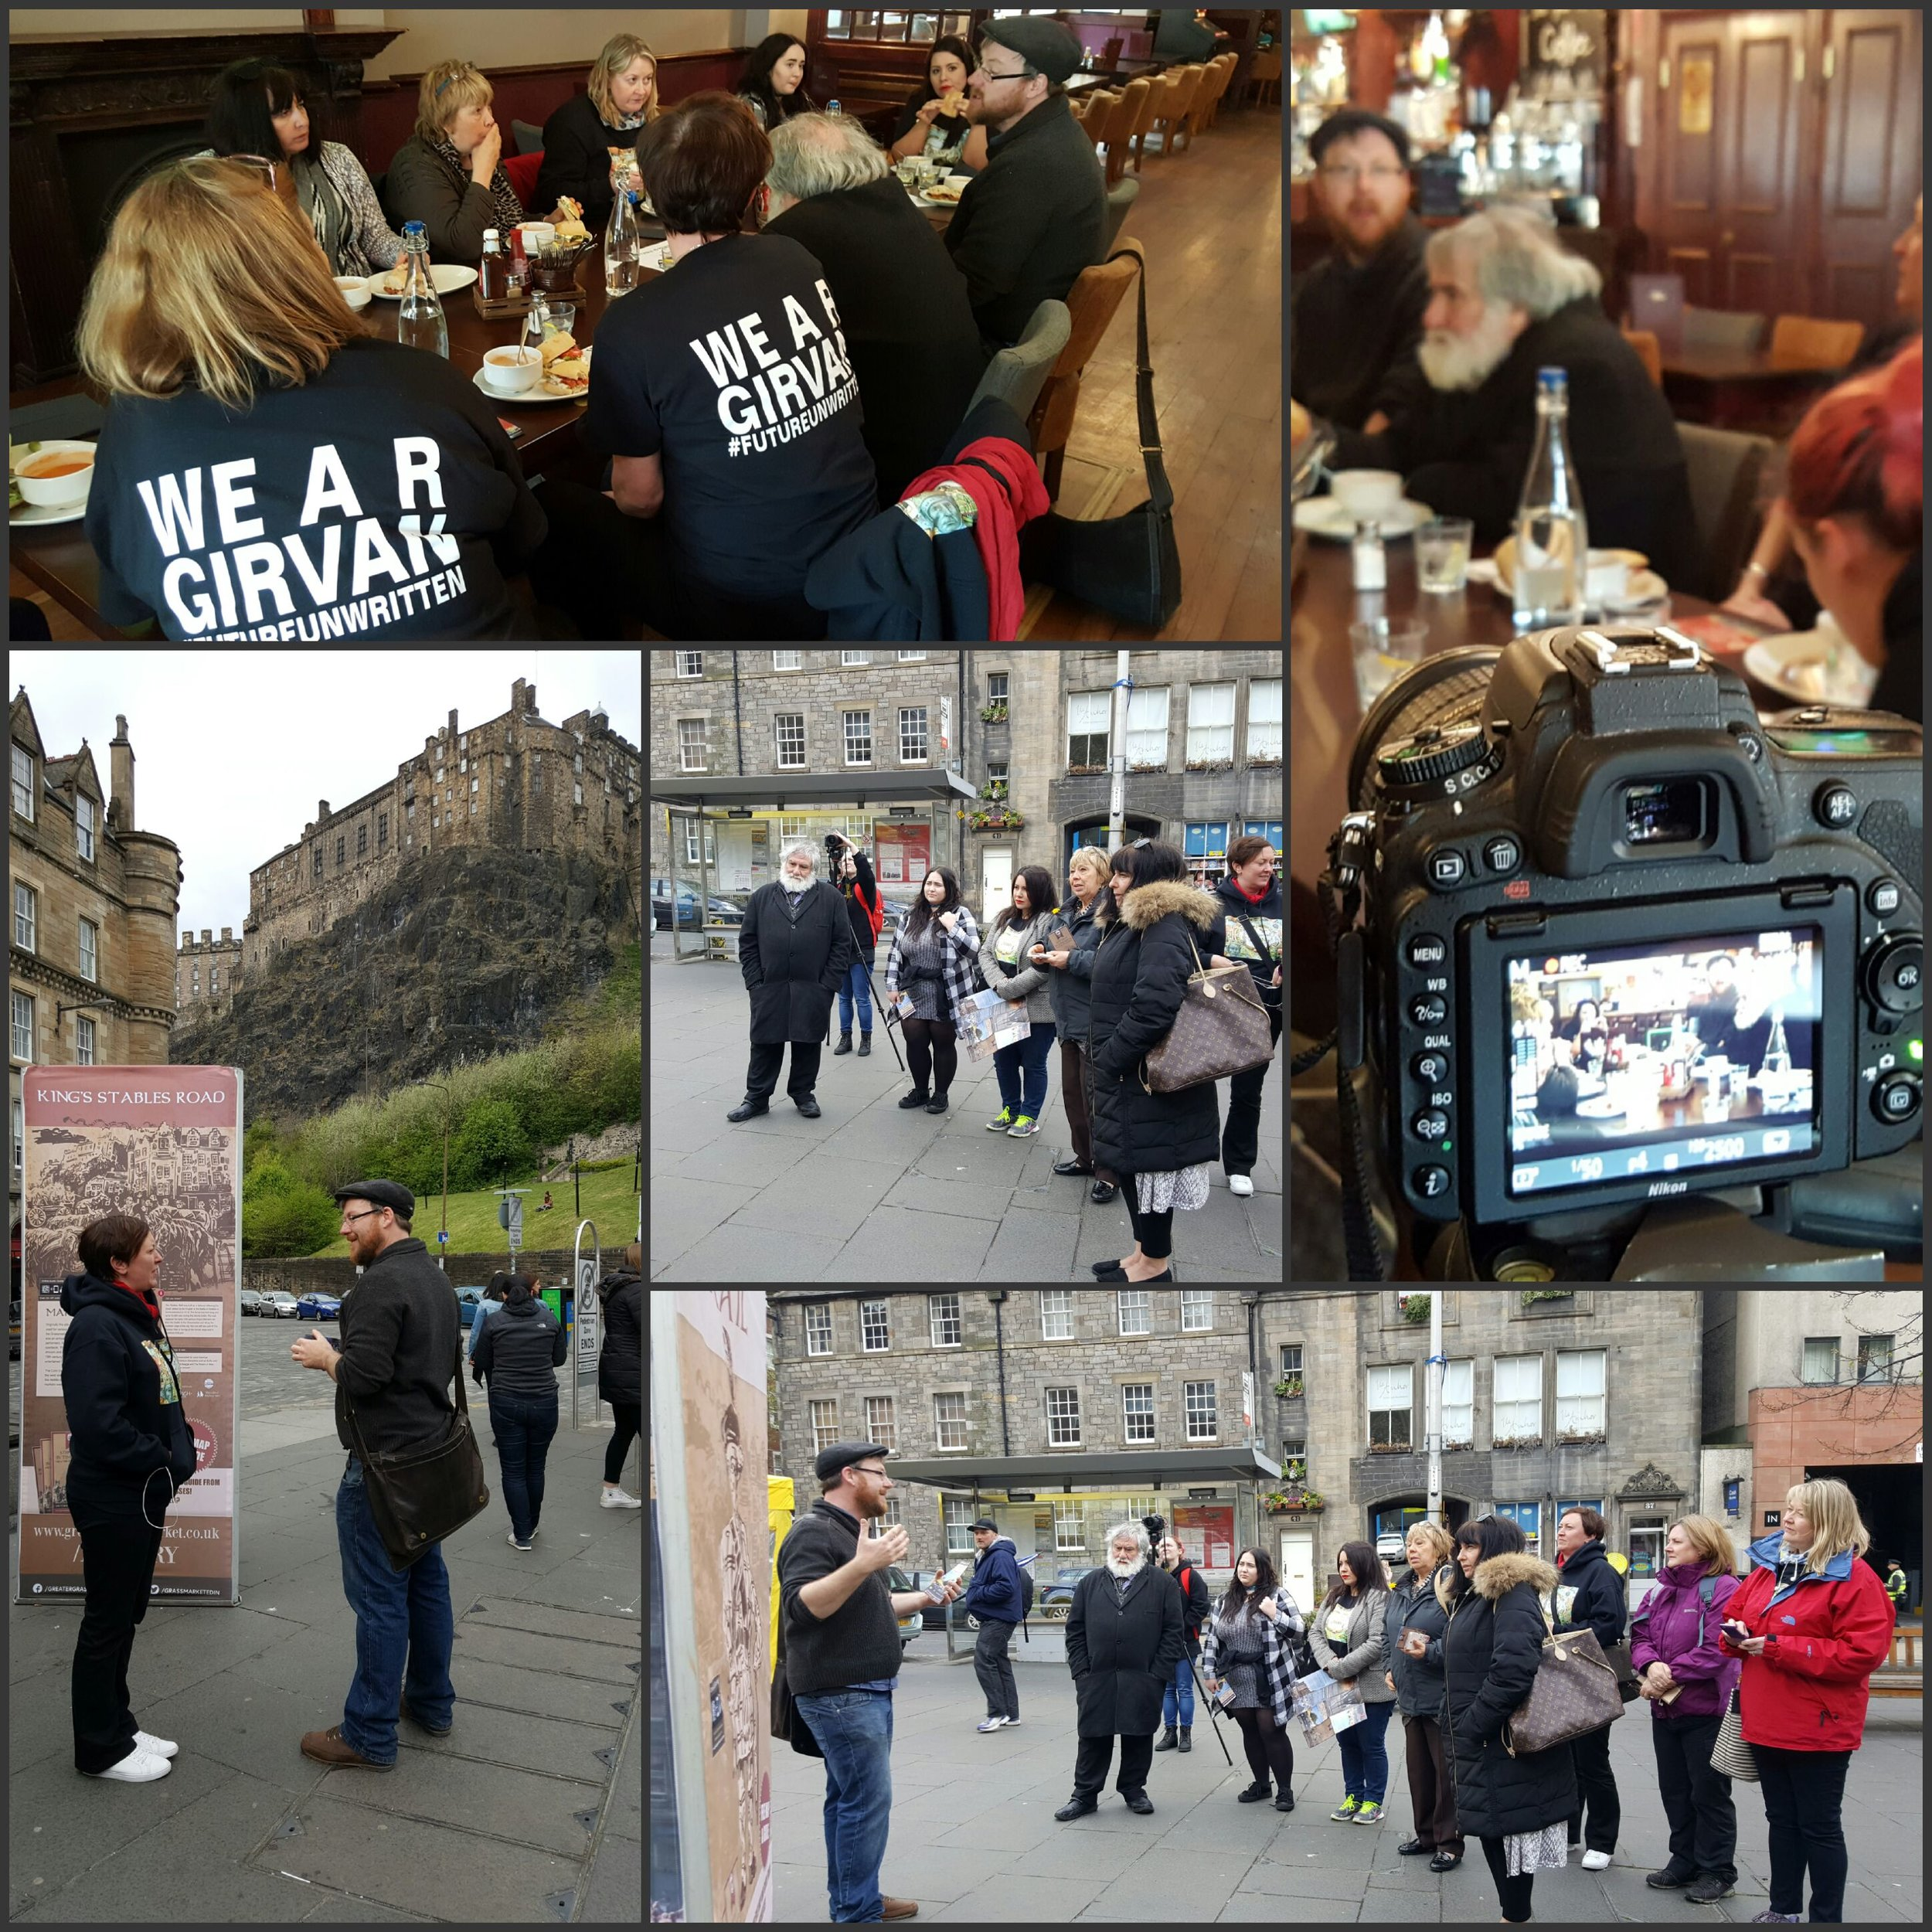 We get about, and here we are filming in Edinburgh for Ros Halley's Tartan Jigsaw, innovative and always lots of fun